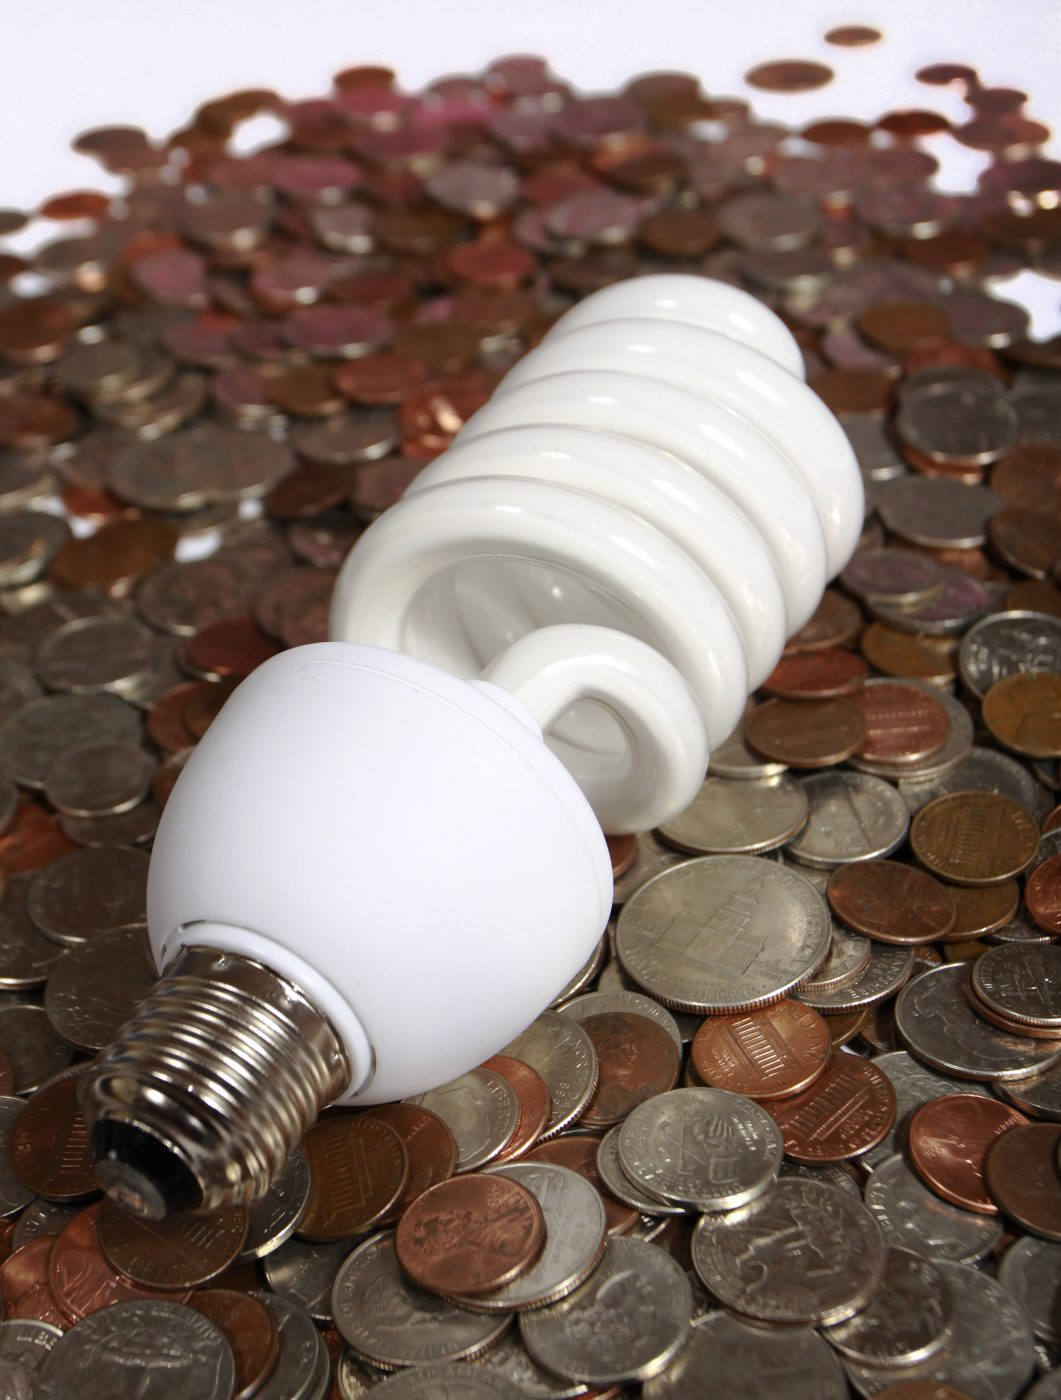 saving money cfl-and-coins-1155203 by Claudio Jule